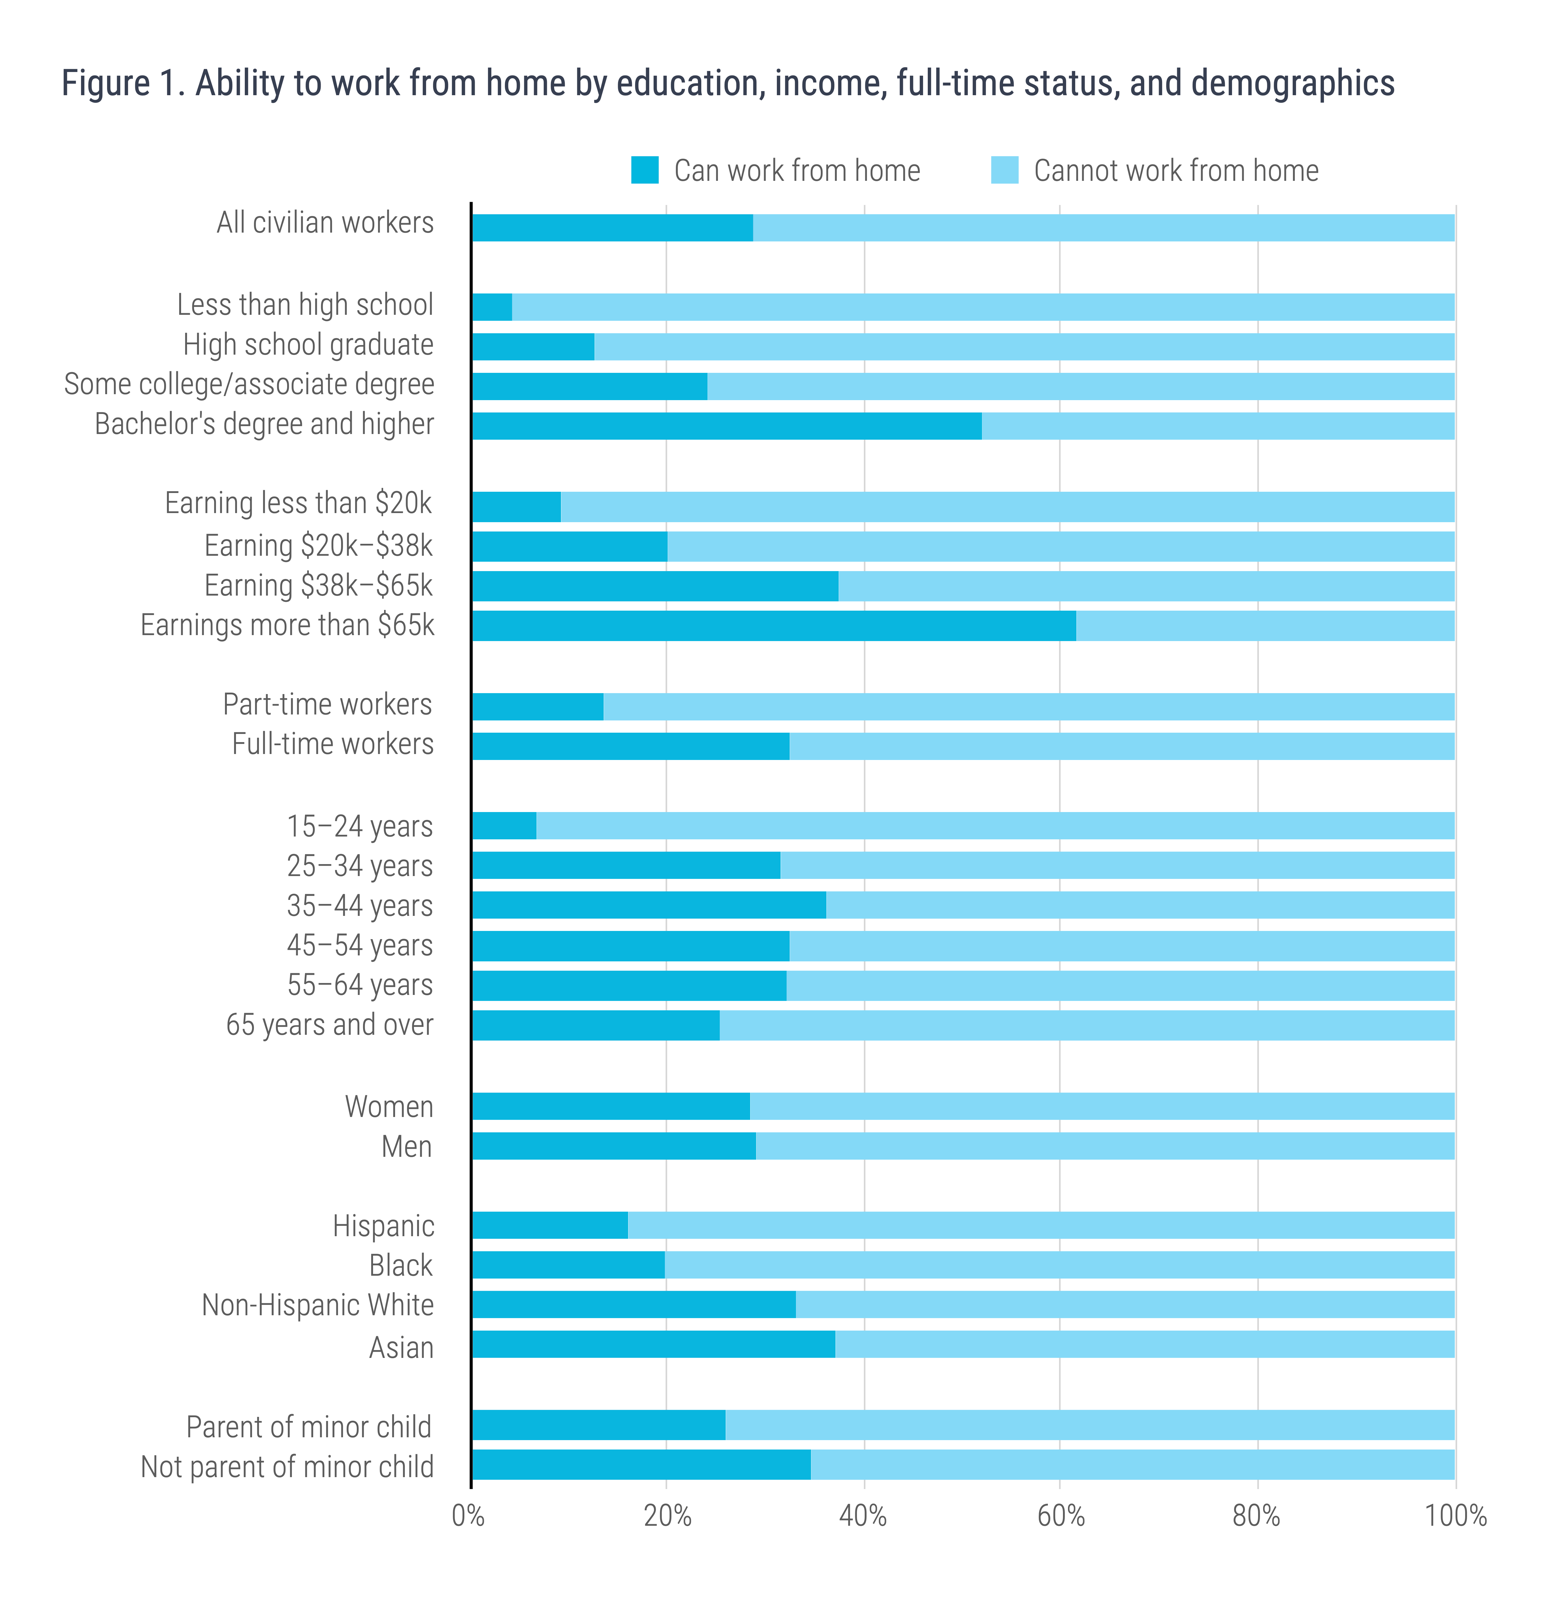 Figure 1. Ability to work from home by education, income, full-time status, and demographics